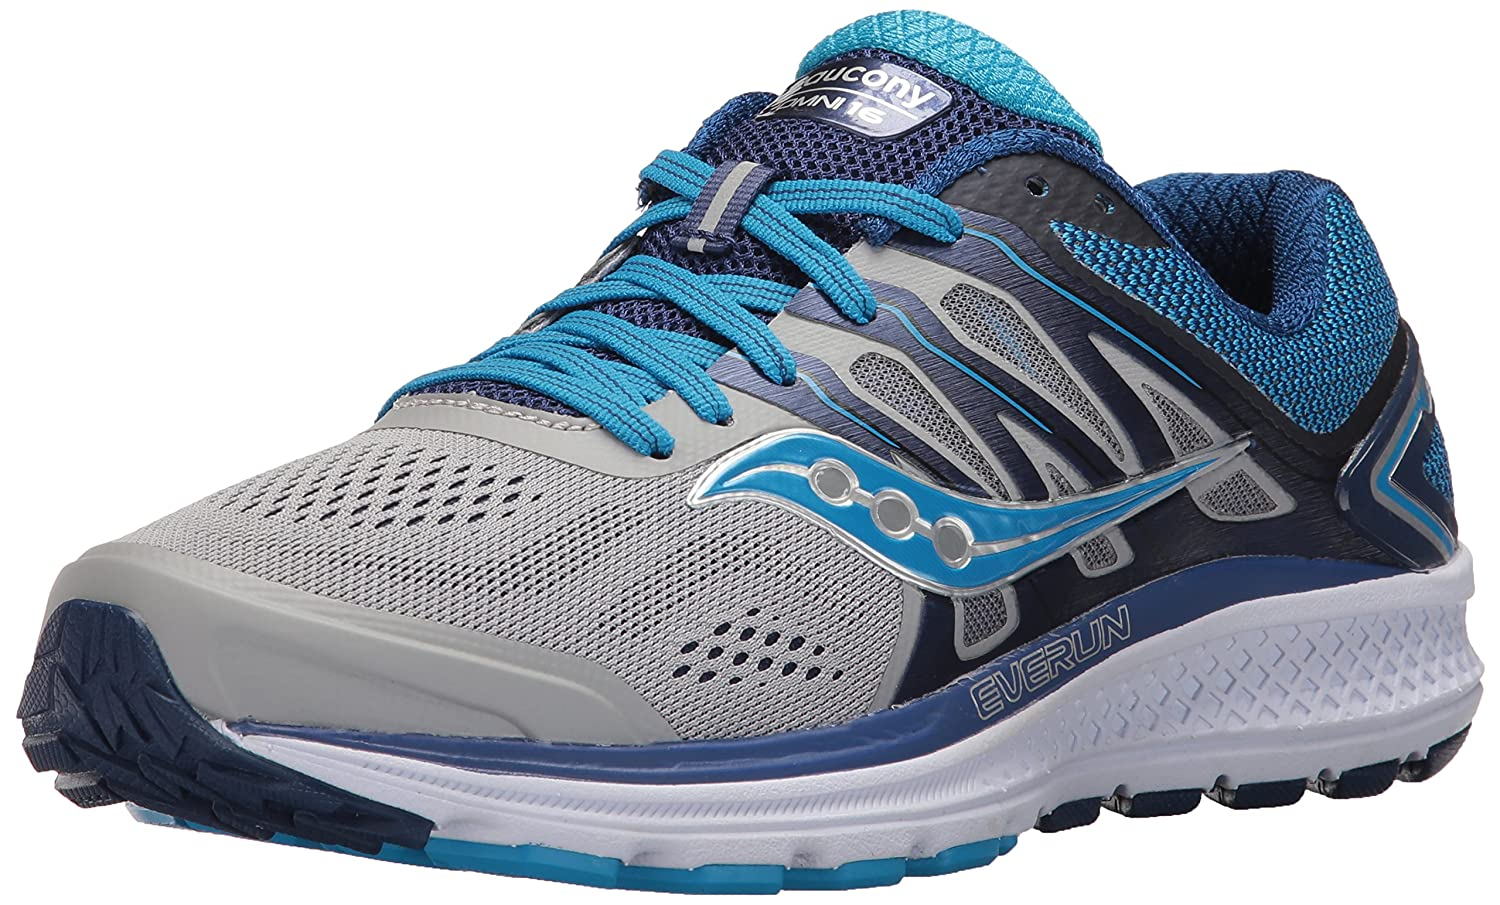 Saucony Women's Omni 16 W Running Shoe B01NCOV1QL 9 W 16 US|Grey Blue 10b714